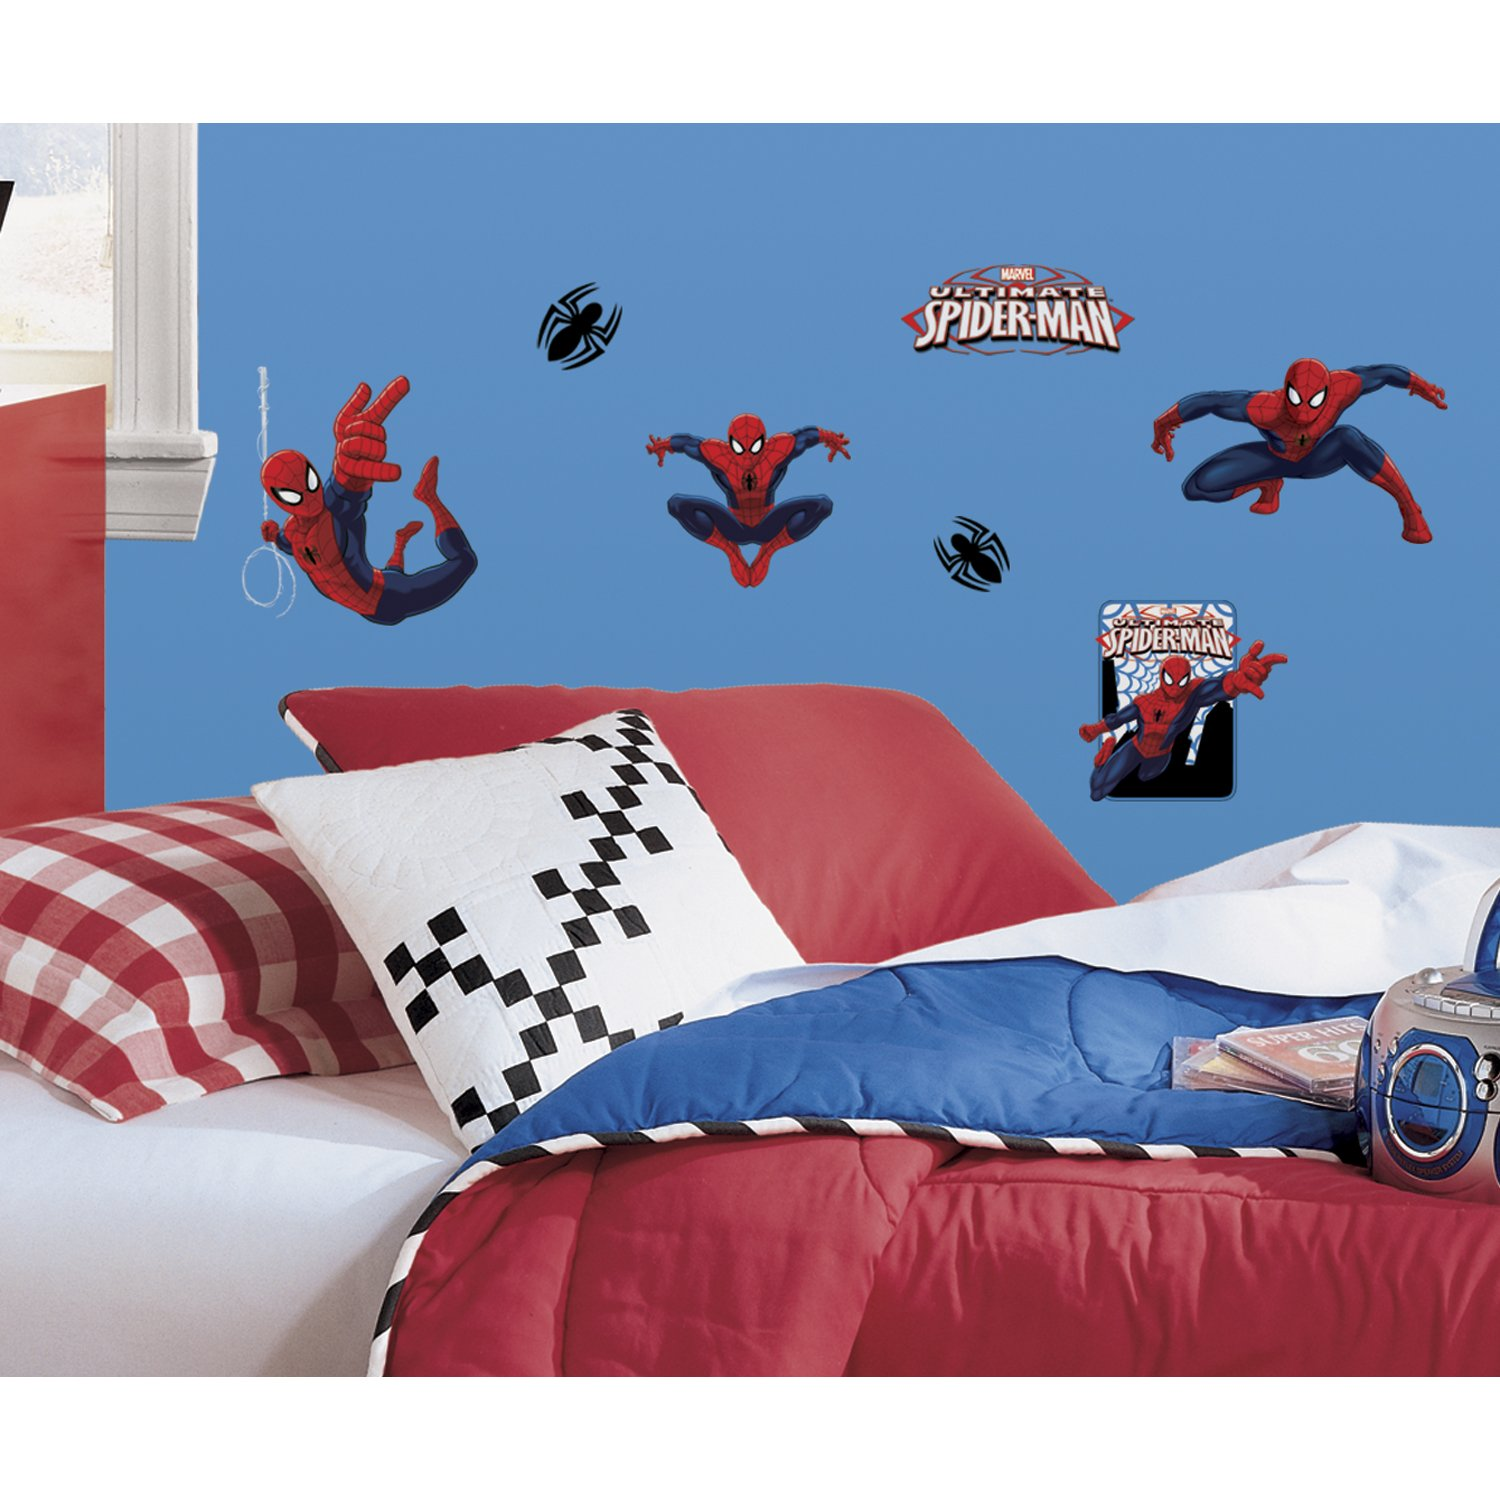 Ultimate Spiderman Peel and Stick Wall Decals, 22 Count